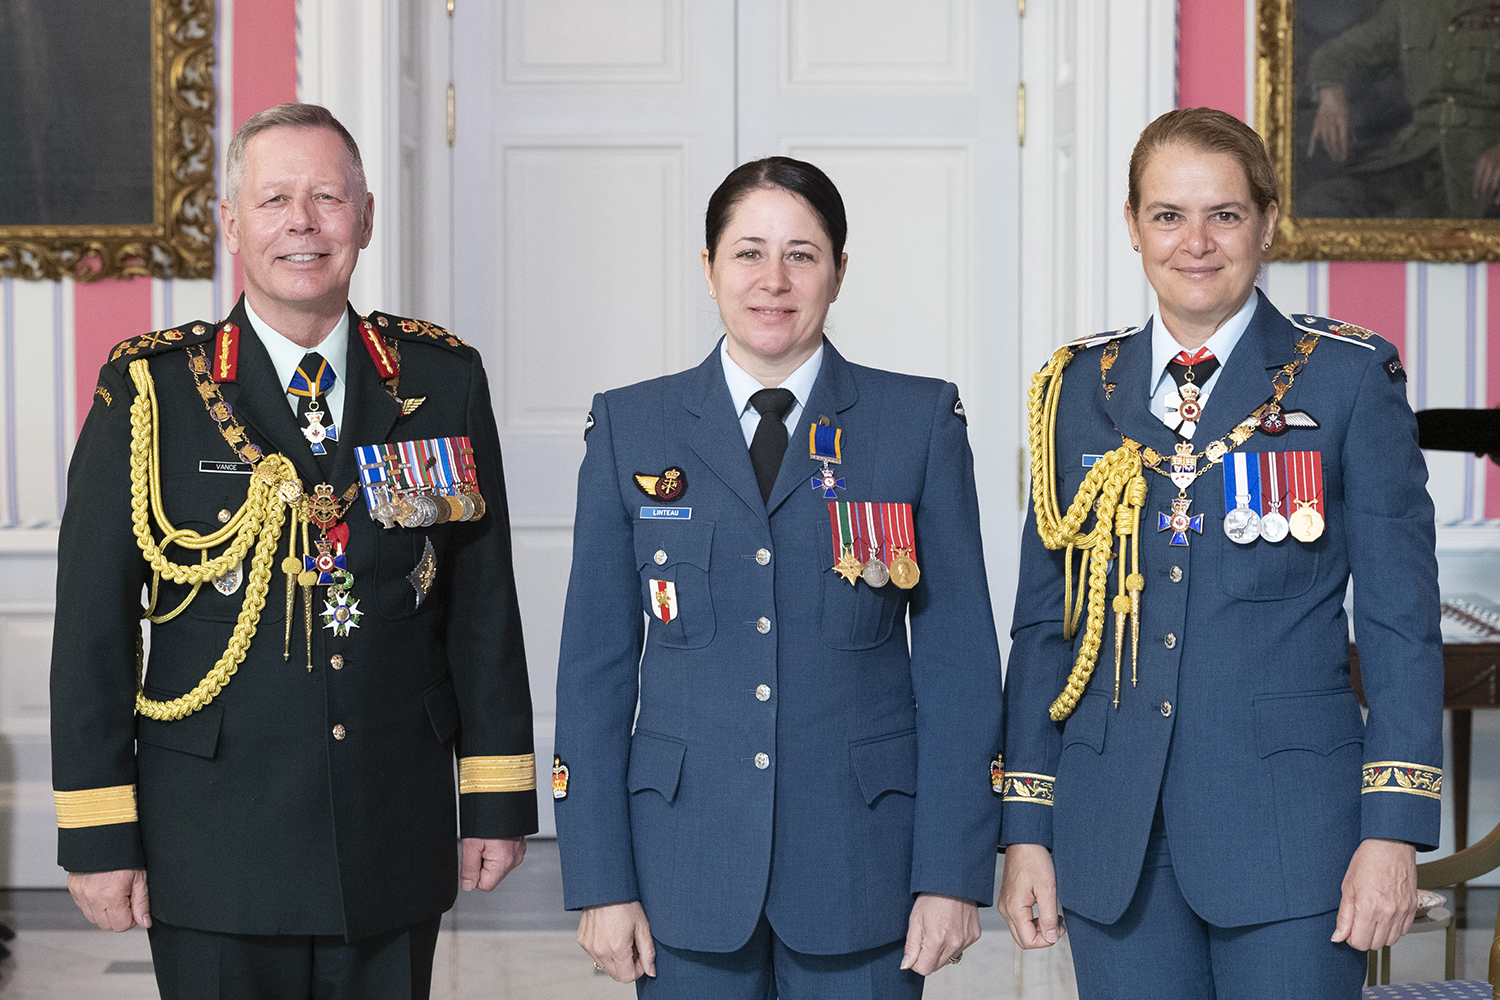 Warrant Officer Caroline Marie Linteau, M.M.M., C.D. (centre) stands with Governor-General Julie Payette and Chief of the Defence Staff General Jonathan Vance after receiving the Member insignia of the Order of Military Merit from the Governor General. PHOTO: Sergeant Johanie Maheu, Rideau Hall, © OSGG, GG0505-2019-0118-044